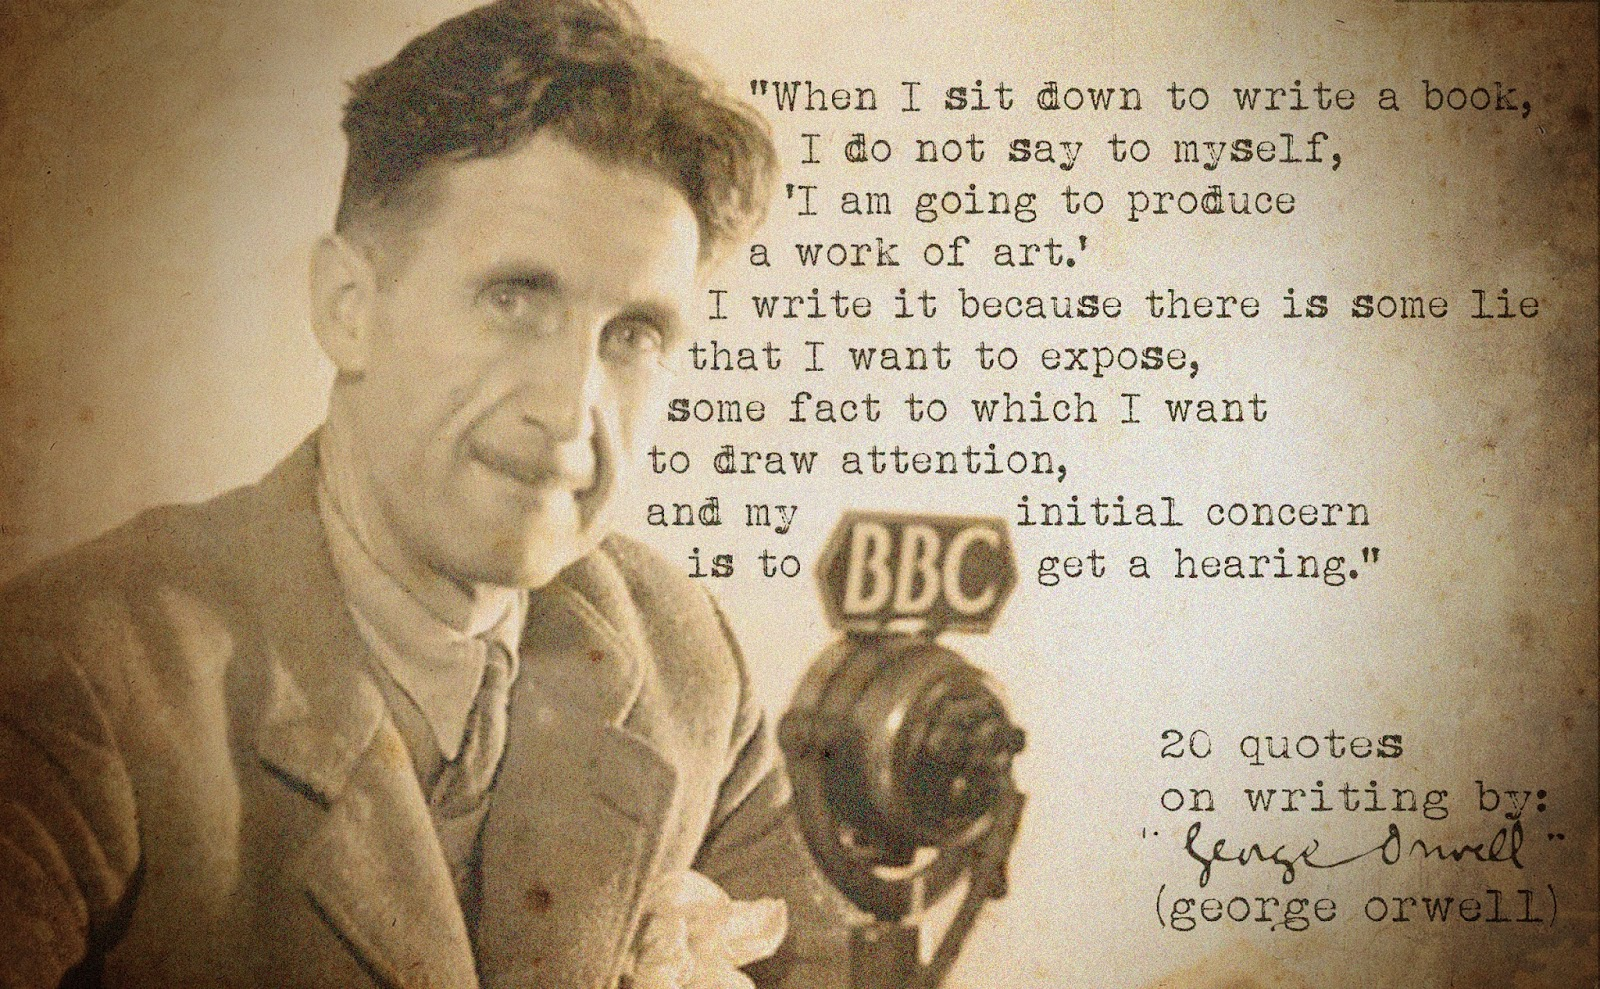 orwell essay on writing george orwell essay on writing